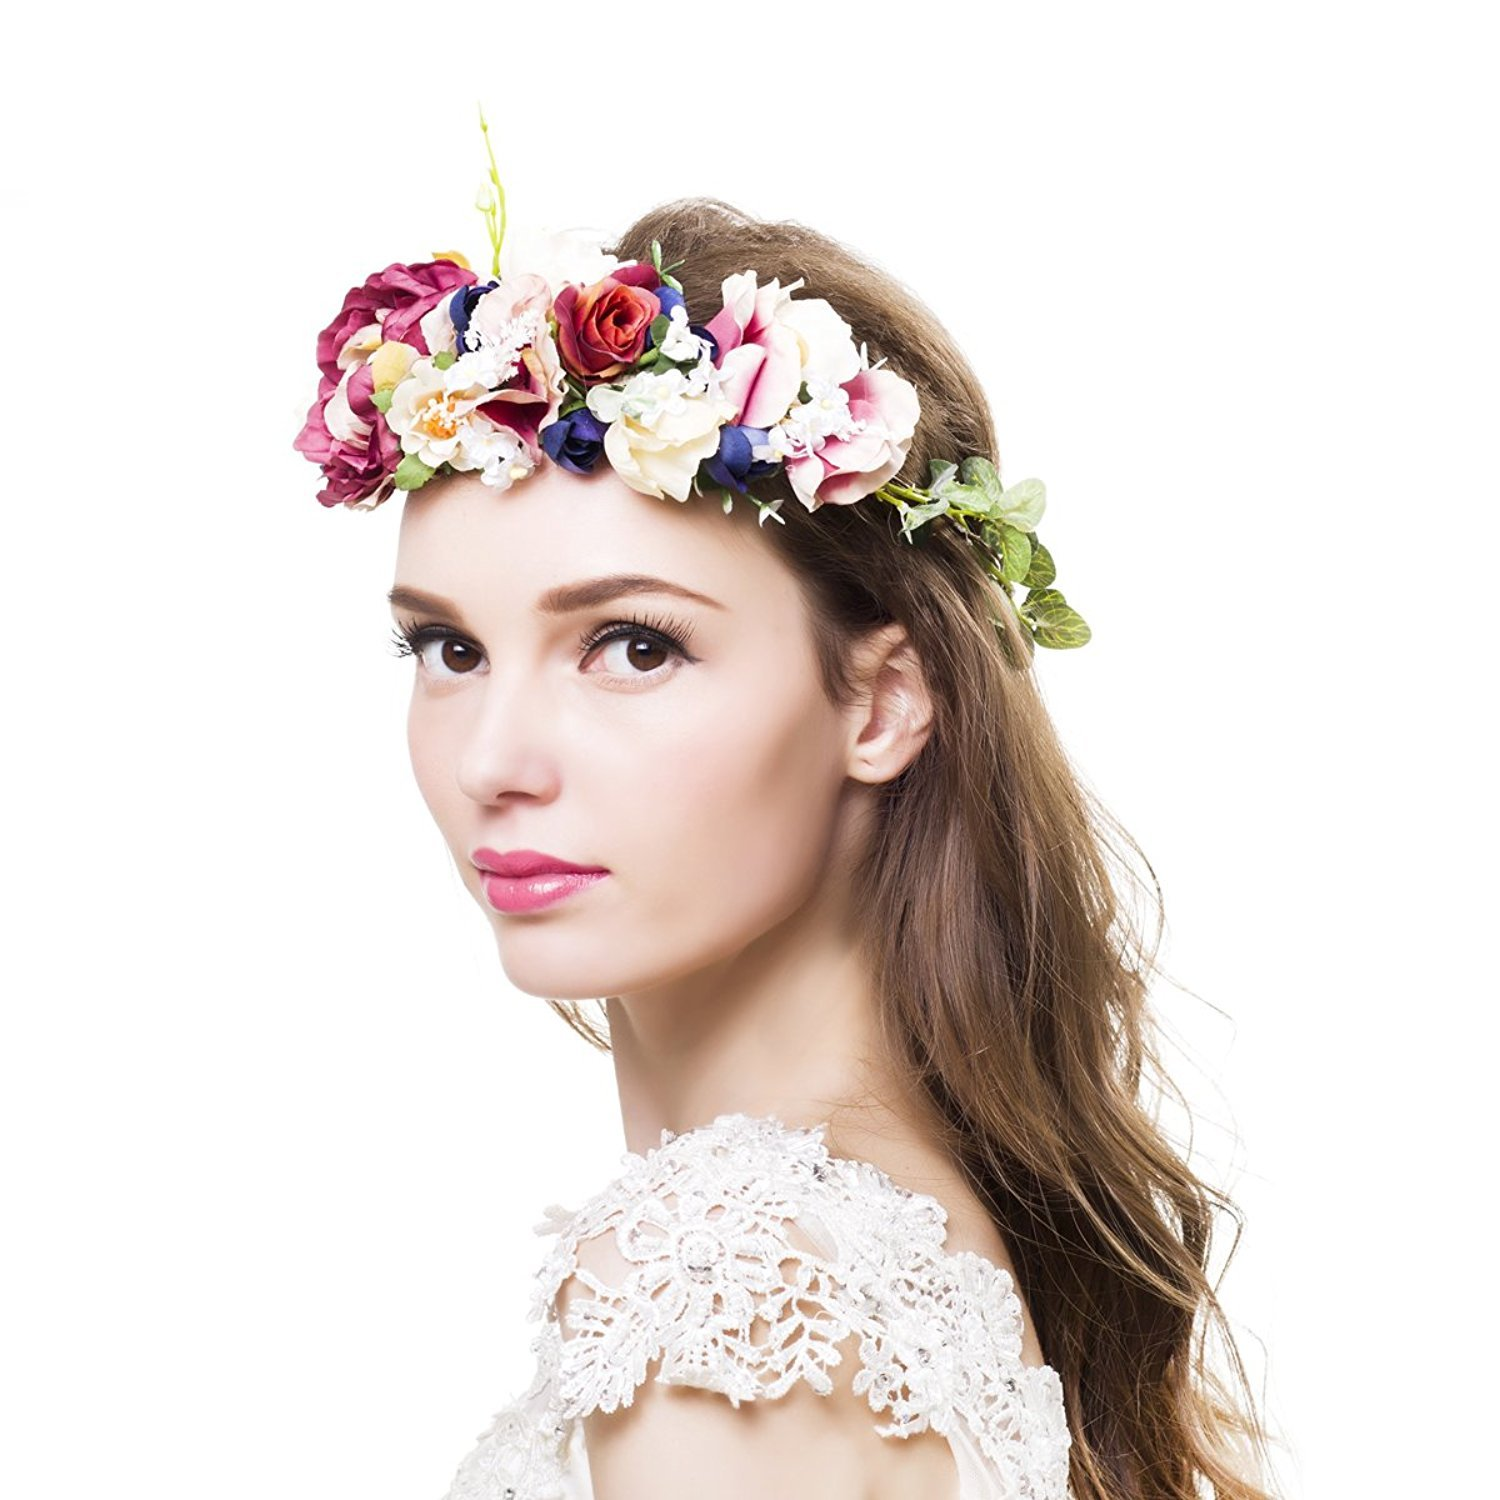 Wedding Flower Crown Headpiece Amazon